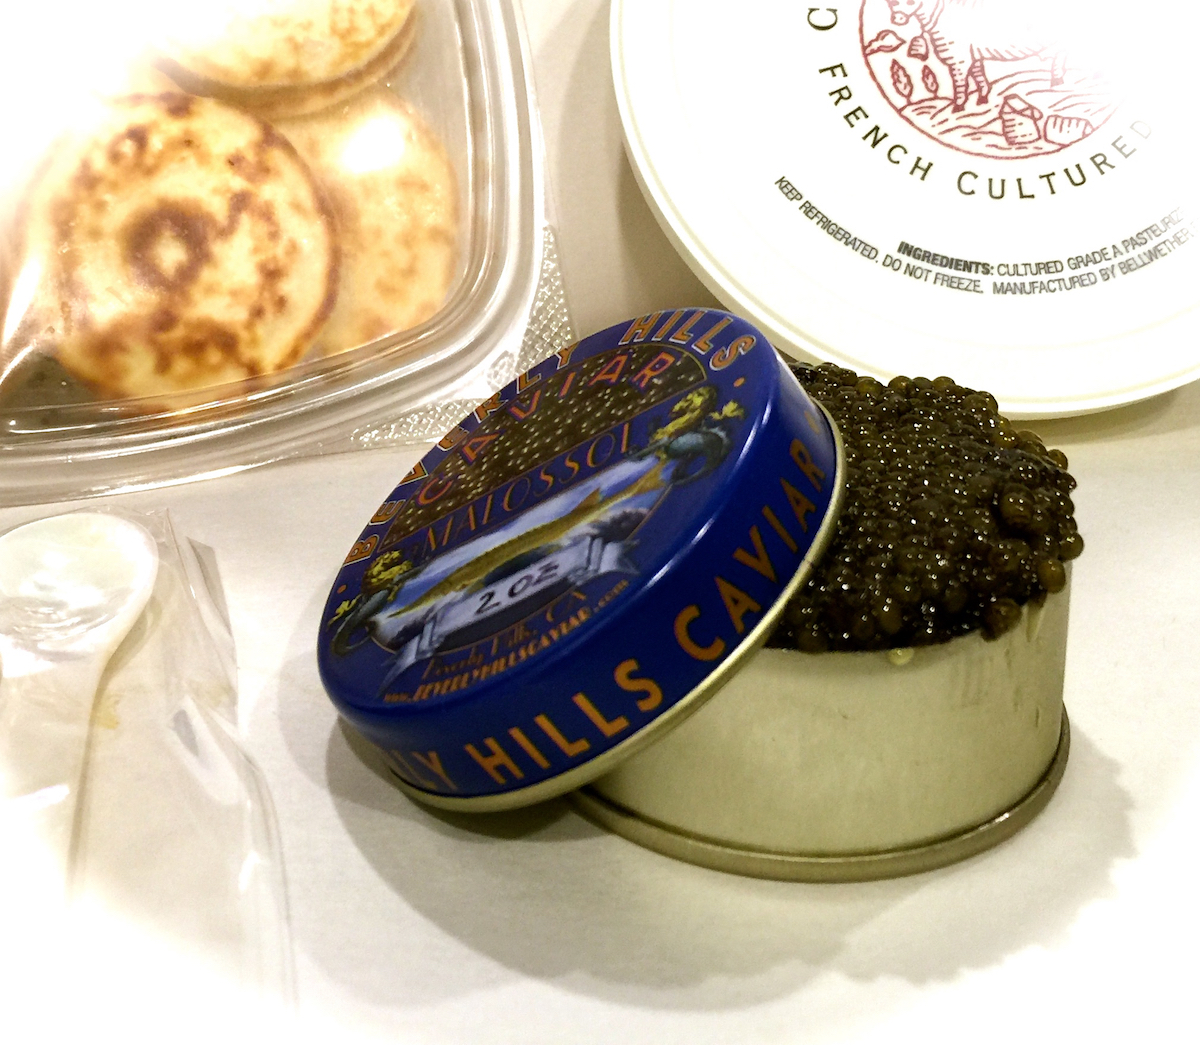 Online Caviar Deal in Norway South Carolina Caviar Promo in Norway South Carolina caviar deal, caviar promotion, online caviar deal, caviar deals